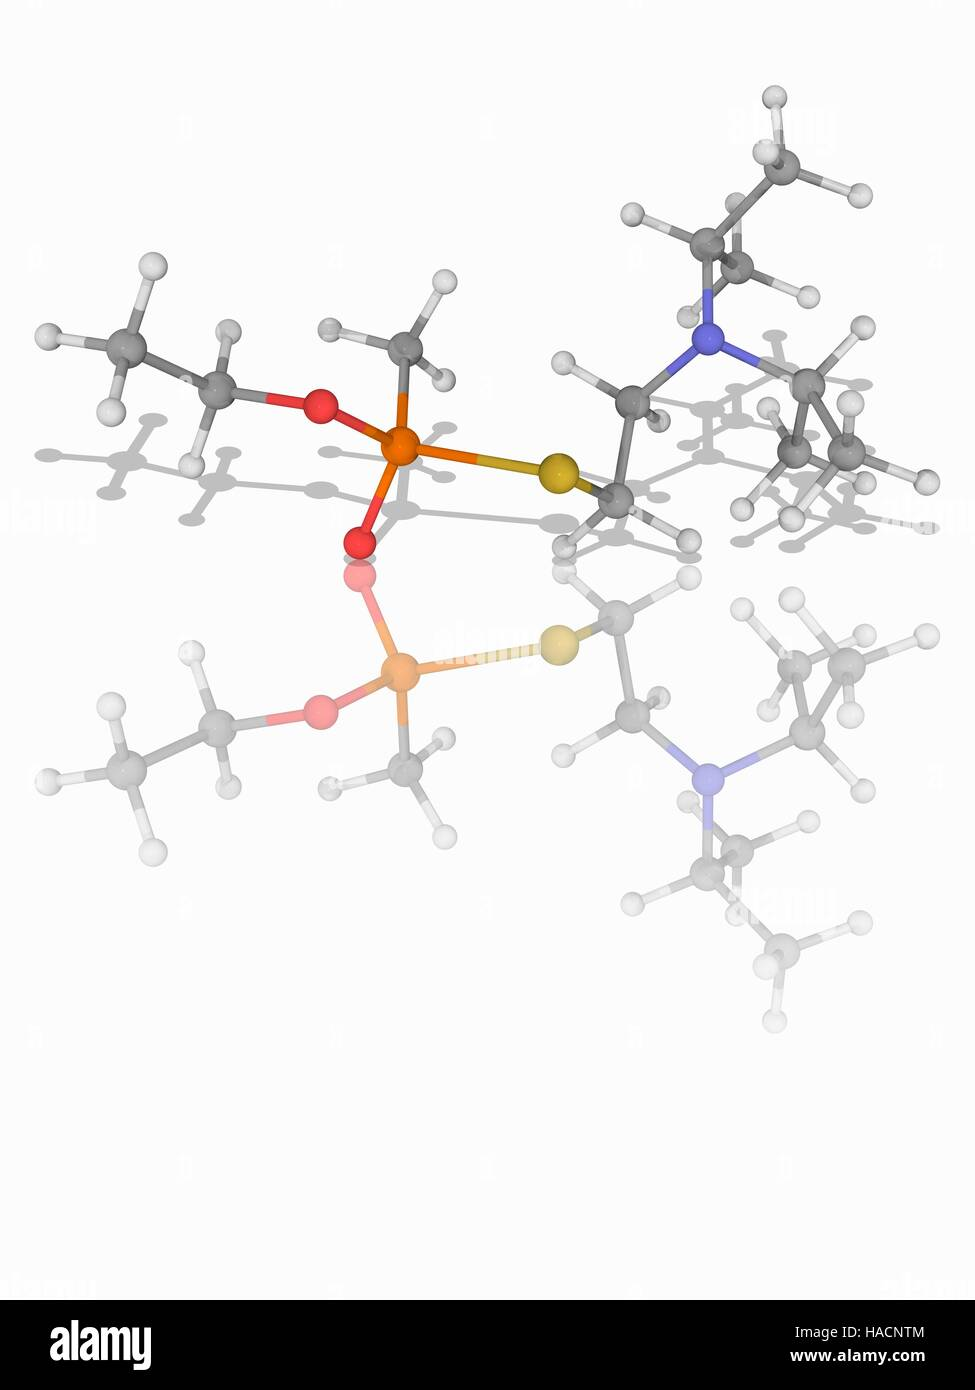 VX nerve gas. Molecular model of the extremely toxic nerve agent VX (C11.H26.N.O2.P.S), used as a weapon of mass - Stock Image